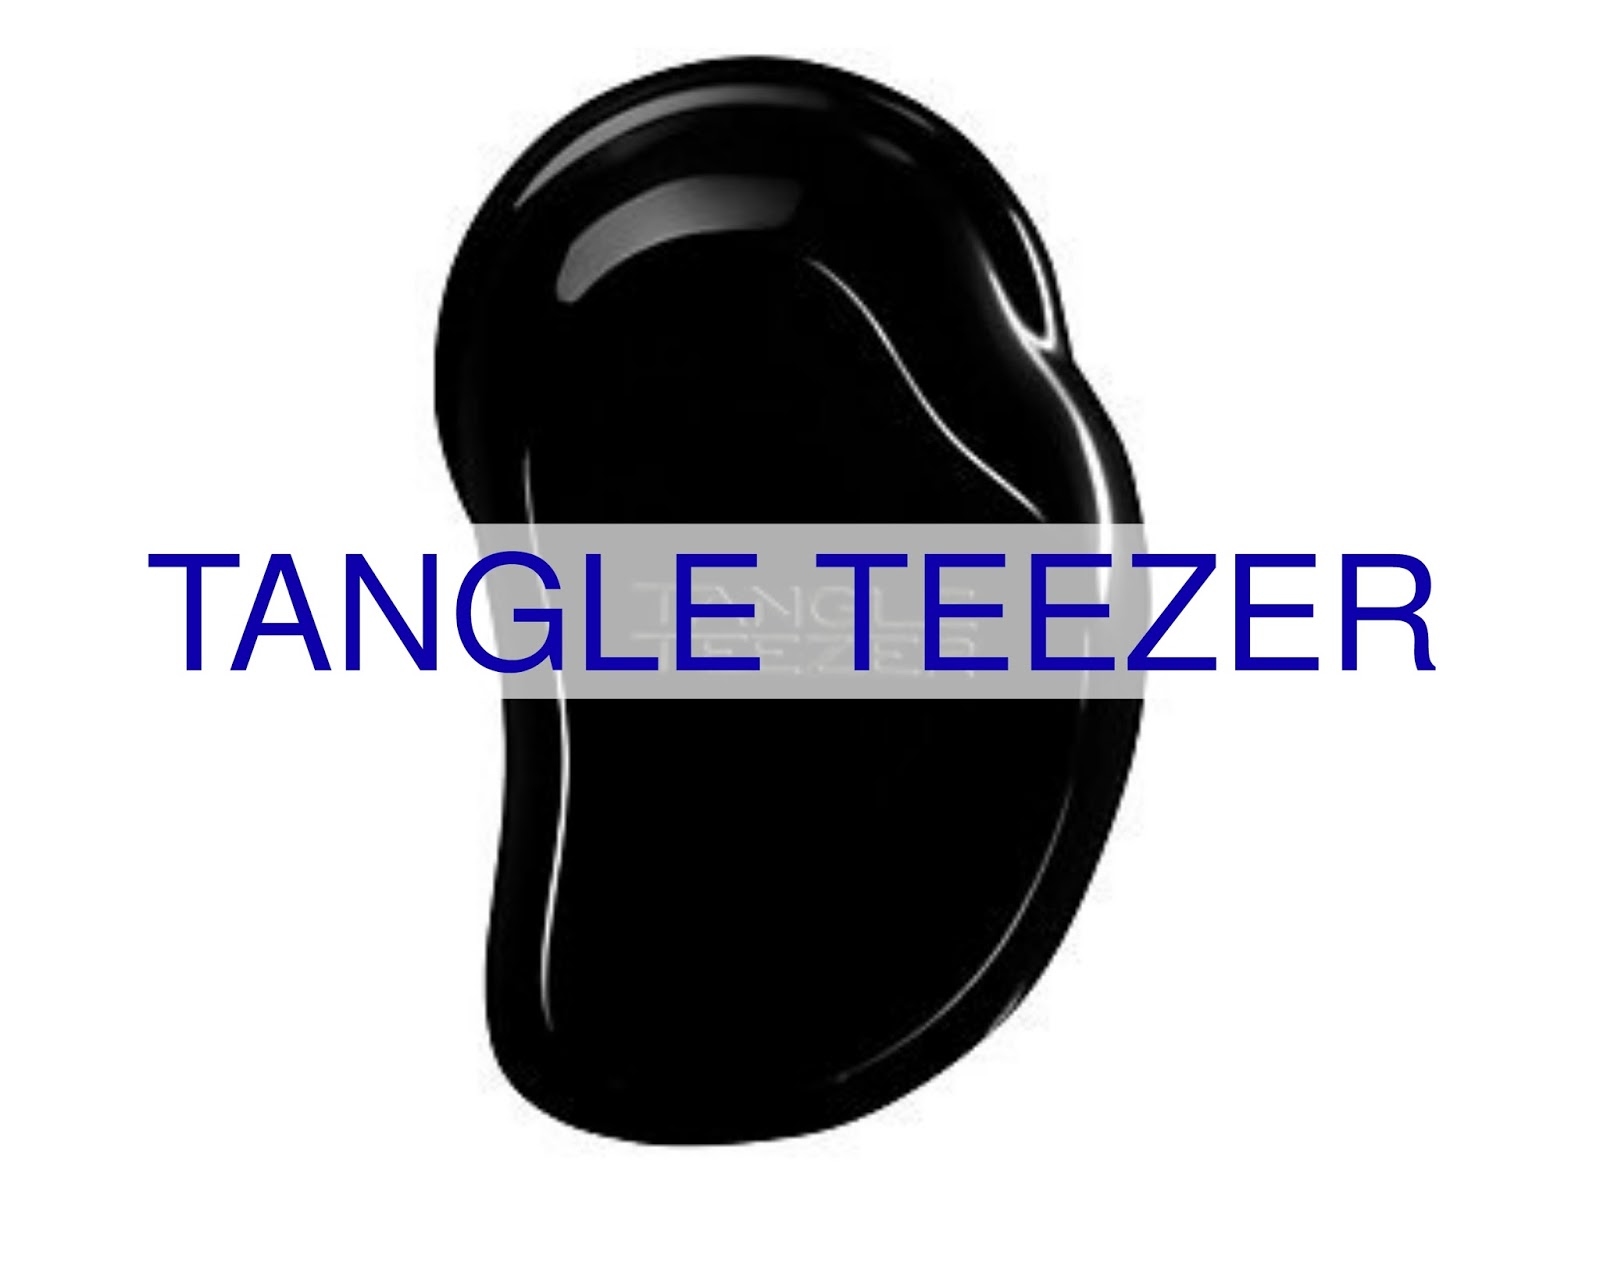 Click here to buy the beloved TANGLE TEEZER ORIGINAL DETANGLING HAIRBRUSH to work through those stubborn tangles.